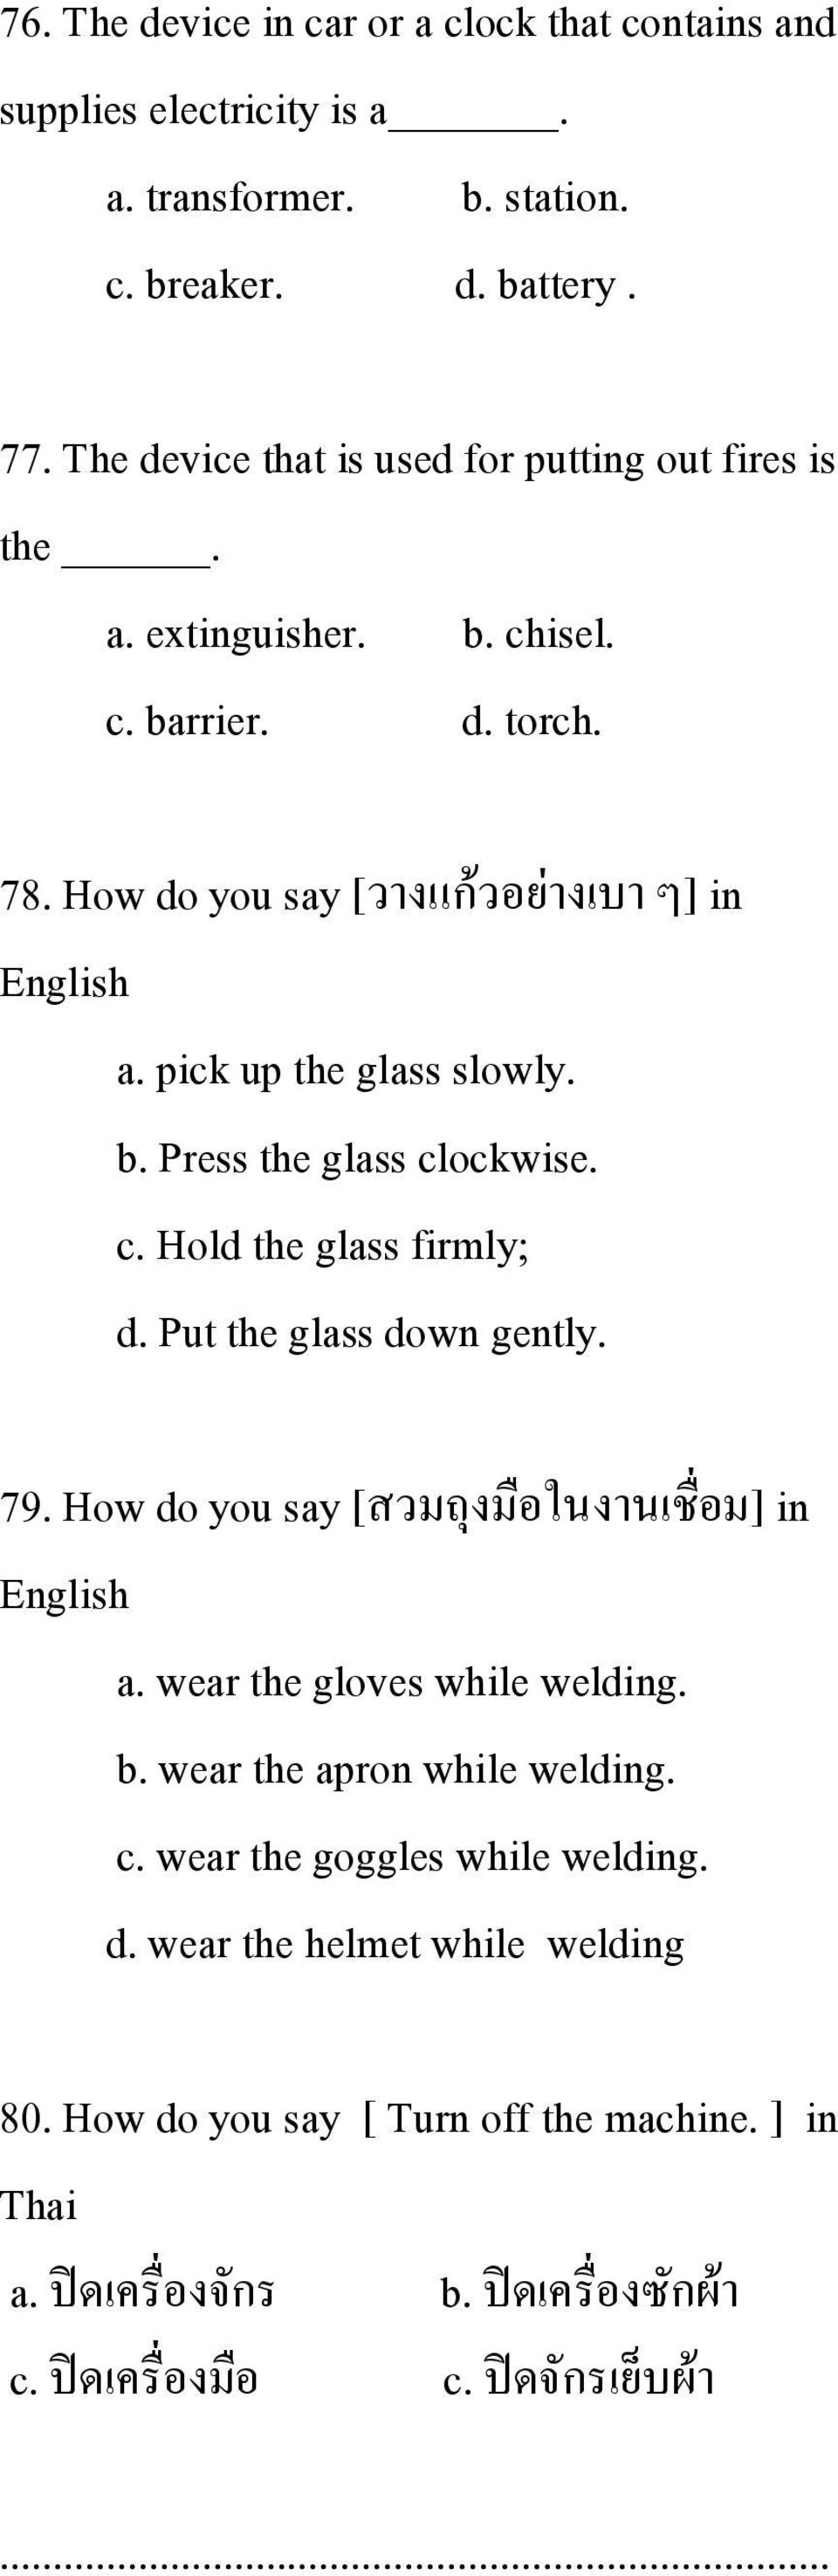 pick up the glass slowly. b. Press the glass clockwise. c. Hold the glass firmly; d. Put the glass down gently. 79. How do you say [สวมถ งม อในงานเช อม] in English a.